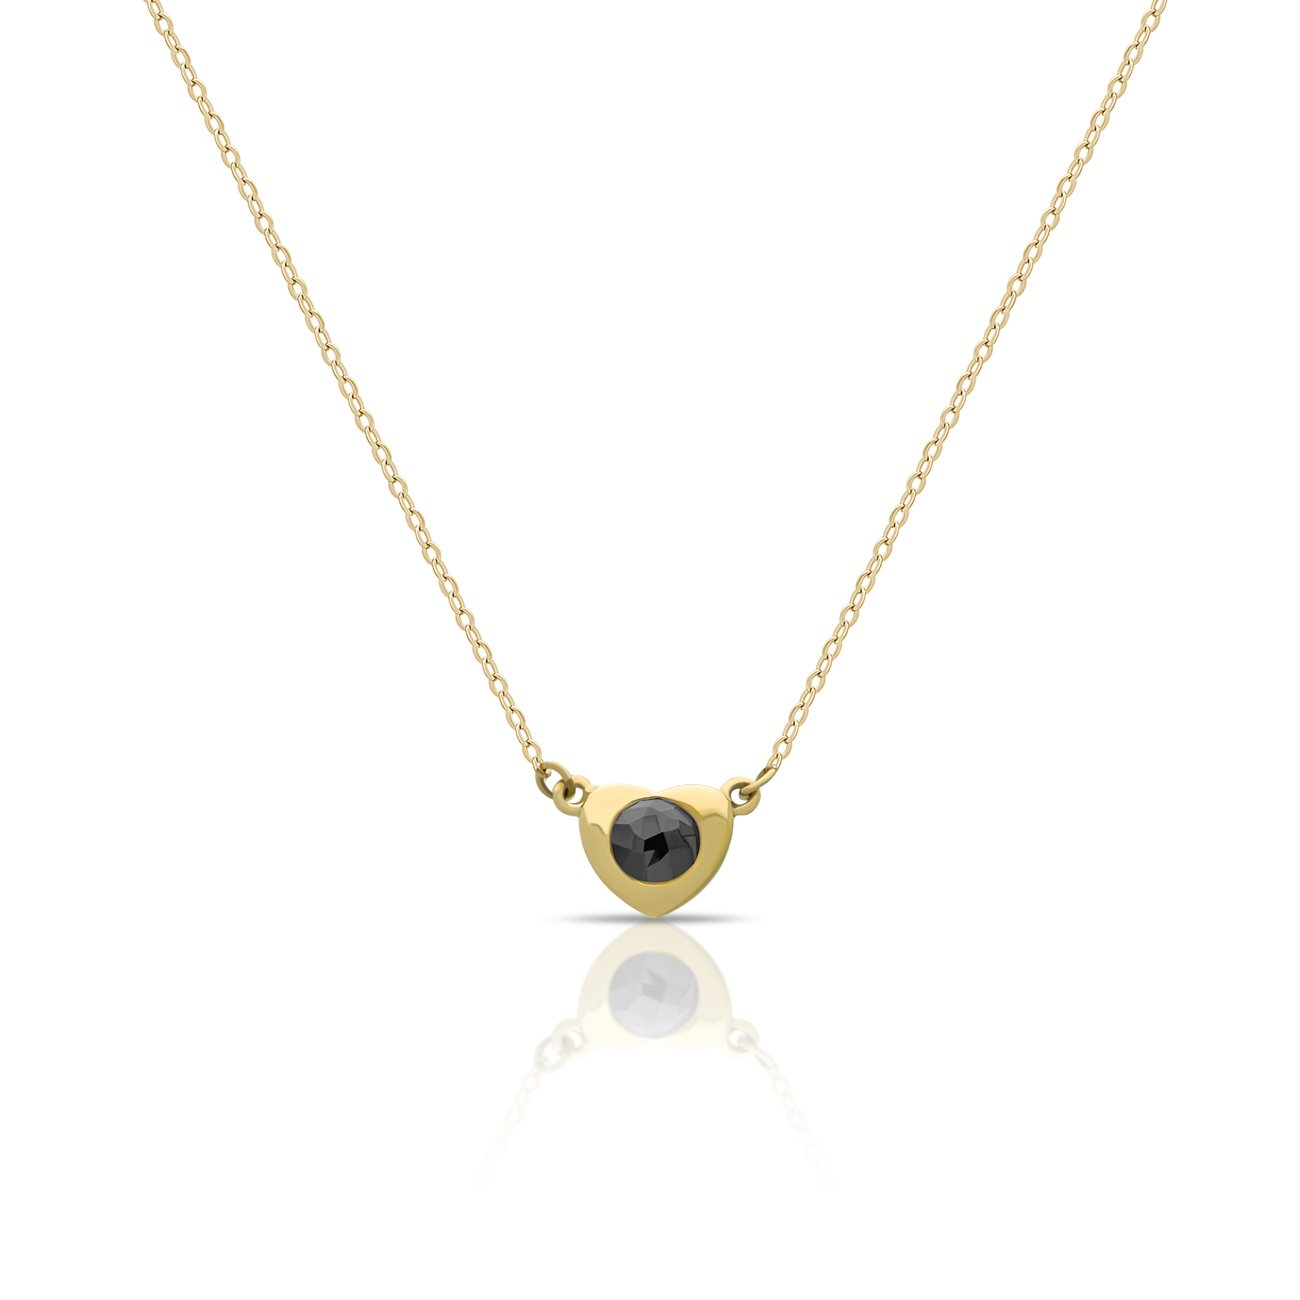 e4550615731a Solid 14K Gold Elegant Heart Necklace w Black Diamond 0.15 carat for Mom 14k  Gold Heart Pendant for Sister Solid Gold Necklaces 16inch + 2